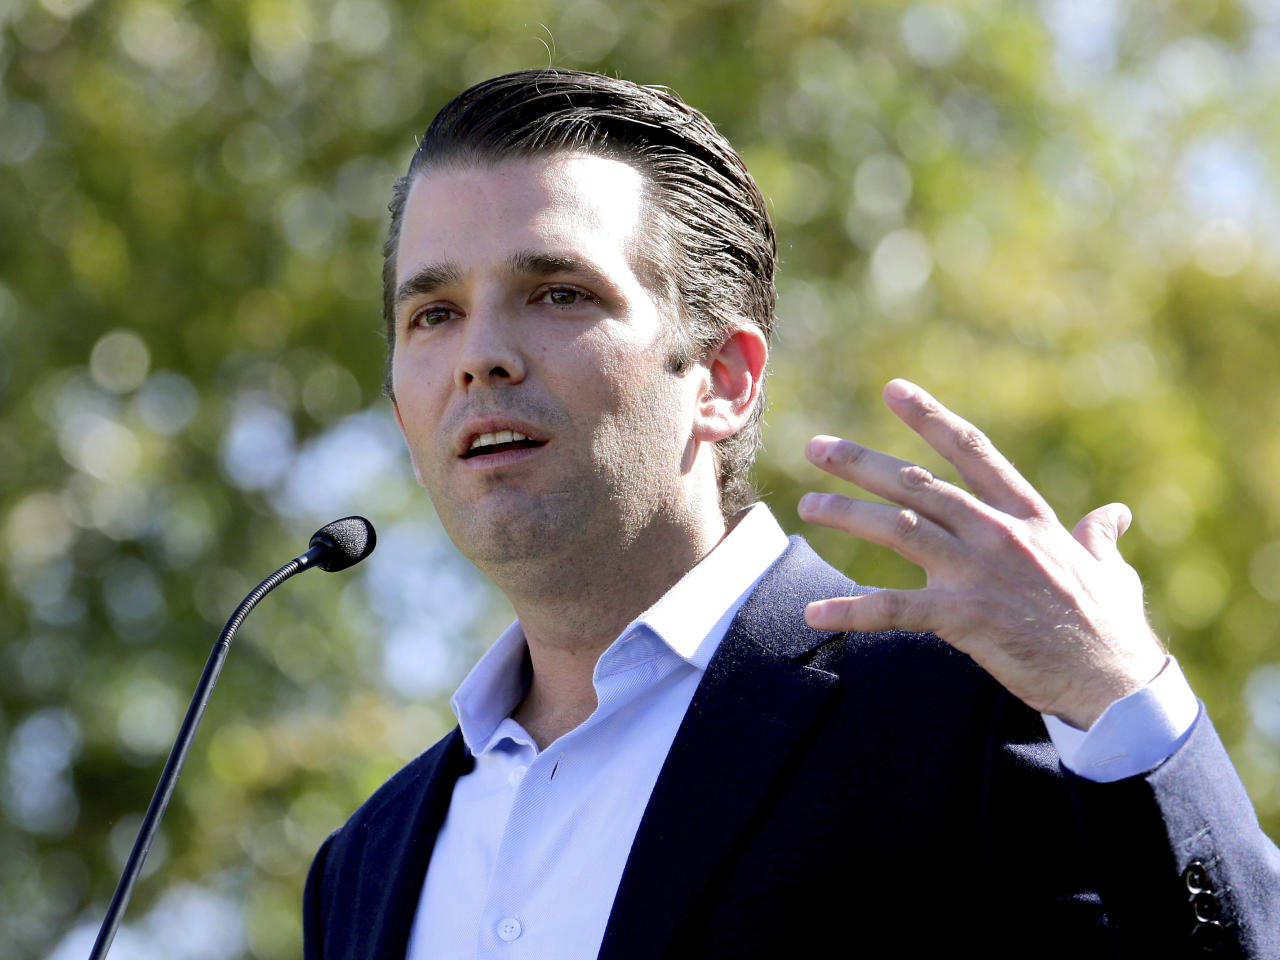 <p>Congressional investigators questioned Donald Trump Jr. on Thursday behind closed doors about his June 2016 meeting with a Russian lawyer who has ties to the Kremlin. According to a New York Times report about the conversation, Trump said he set up the meeting because he was intrigued to get possible damaging information about Hillary Clinton and her fitness to be president. </p>